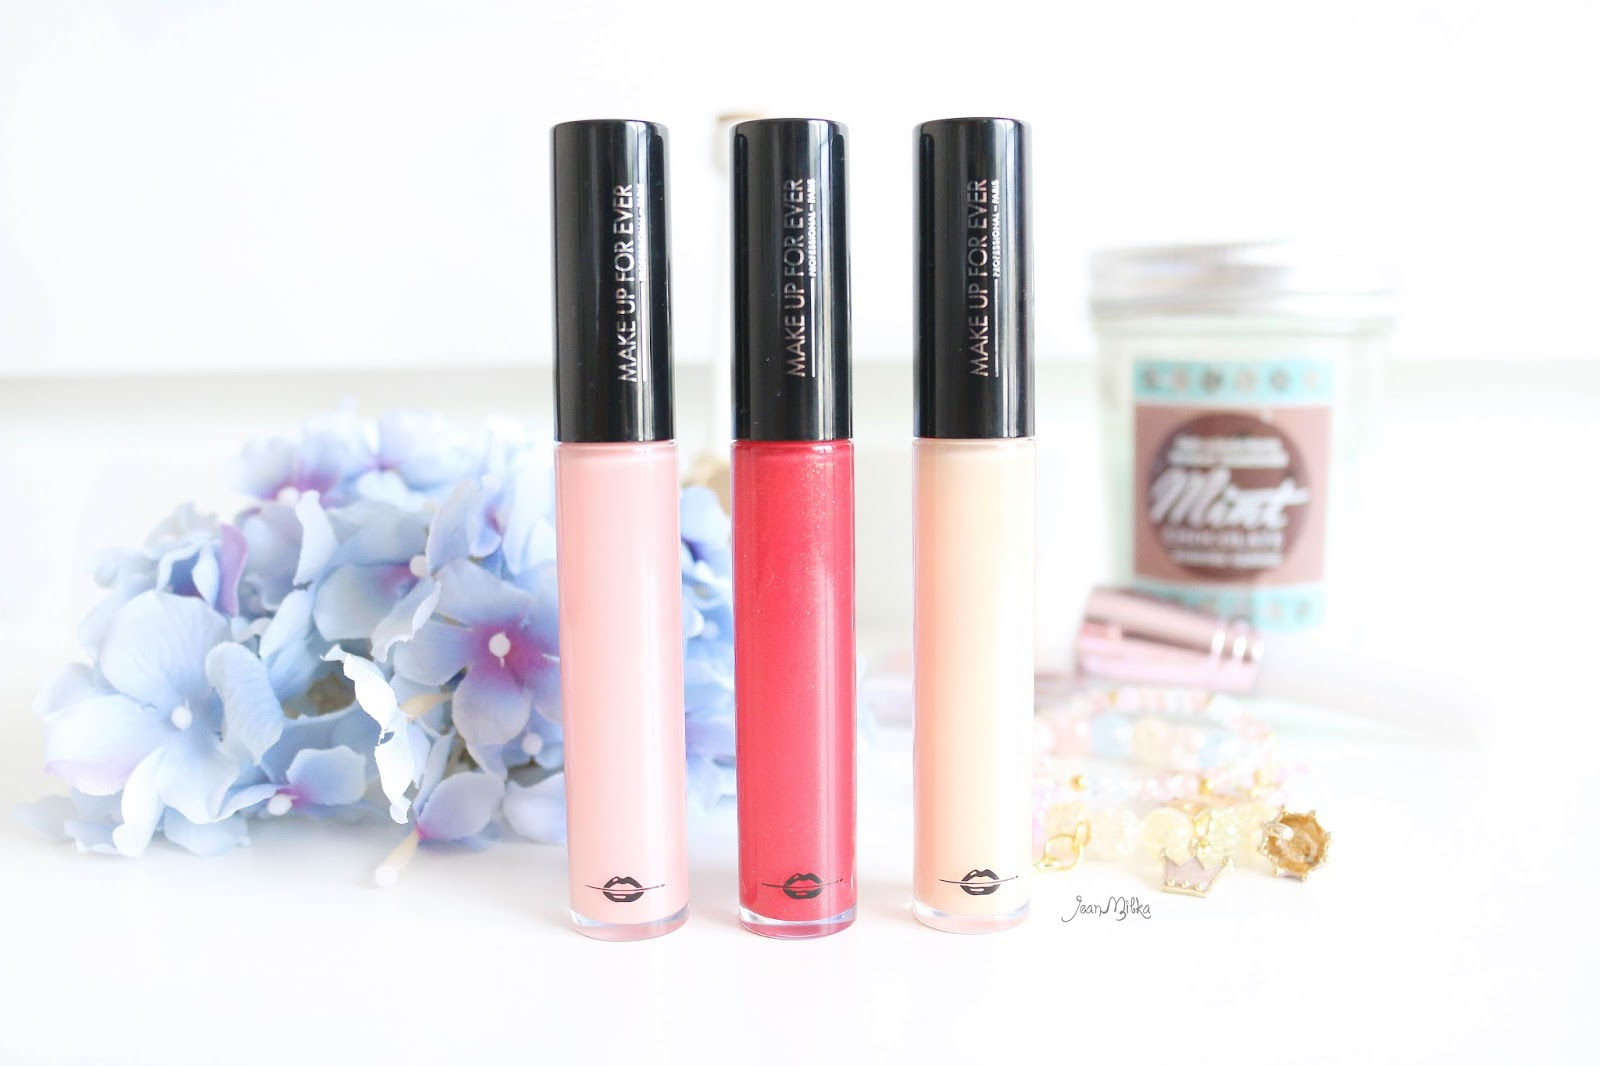 make up for ever, makeup forever, artist plexi gloss, plexi gloss, lip gloss, makeup, review, swatch, mufe